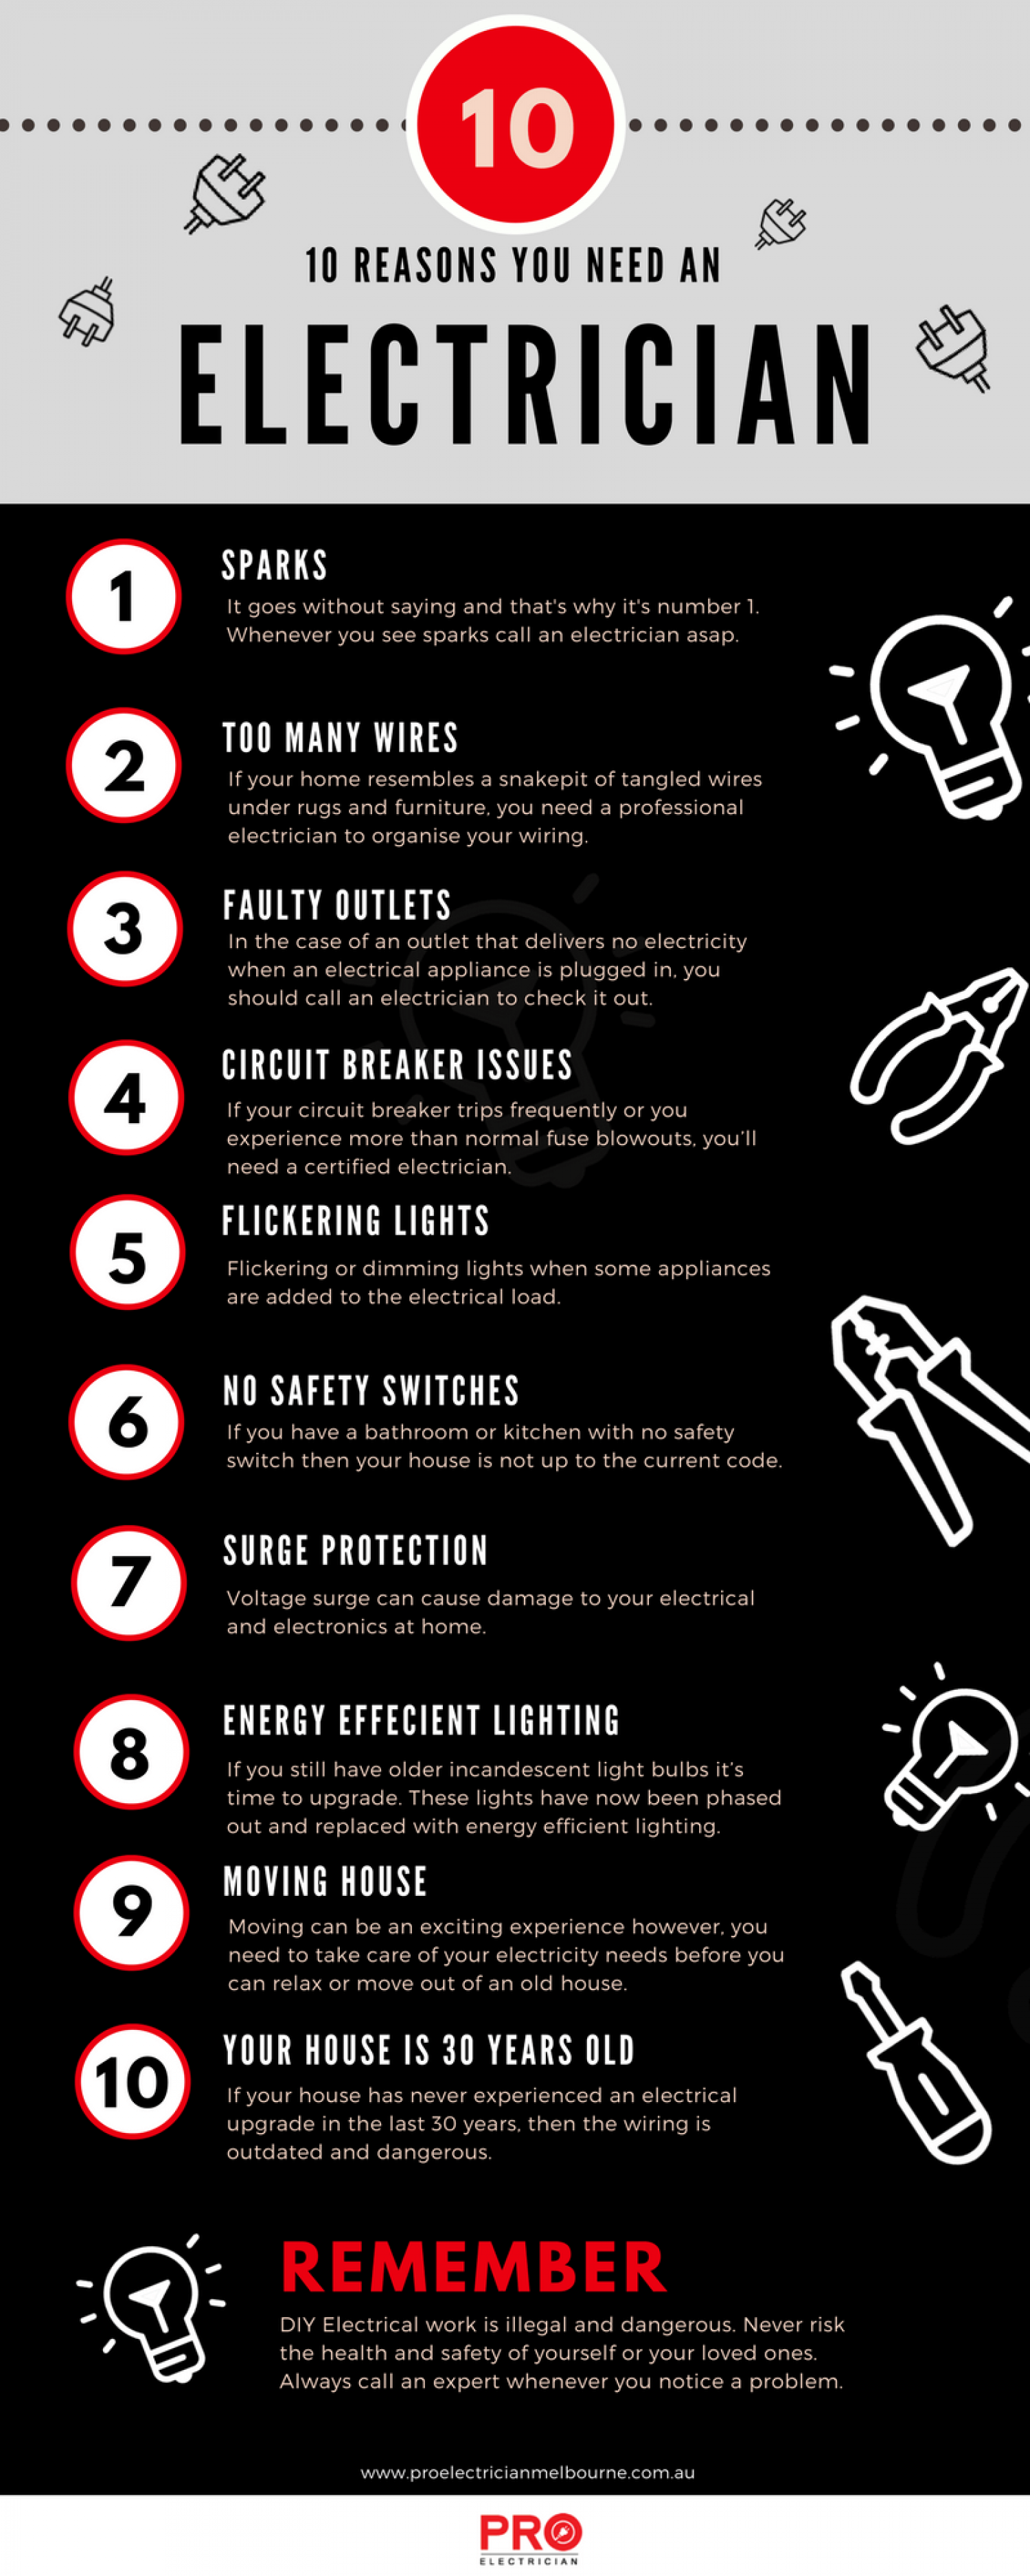 10 Reasons To Call An Electrician Infographic